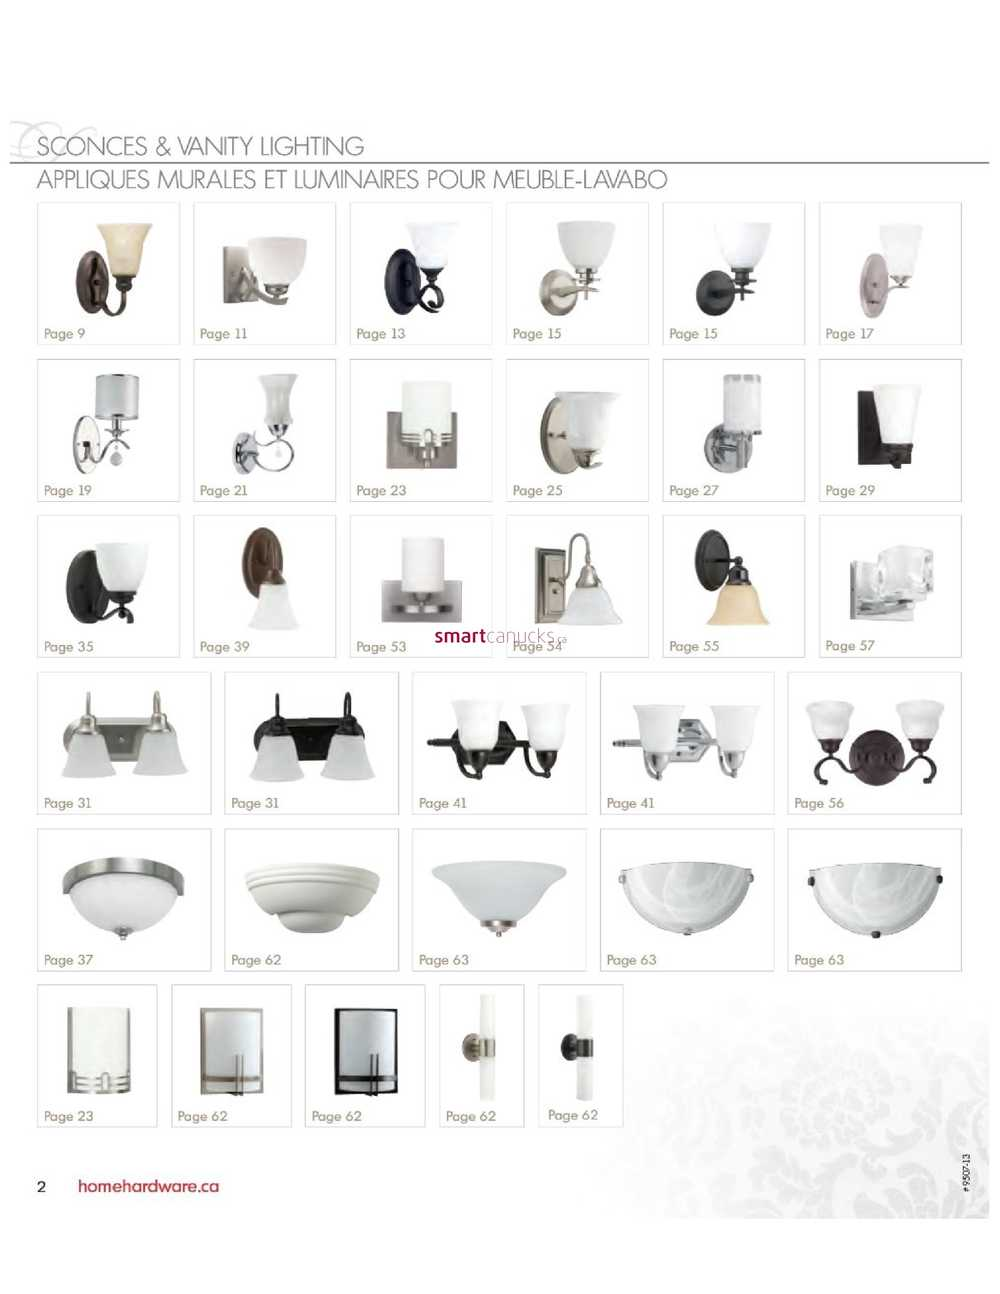 Home Hardware Lighting/Electrical Catalog